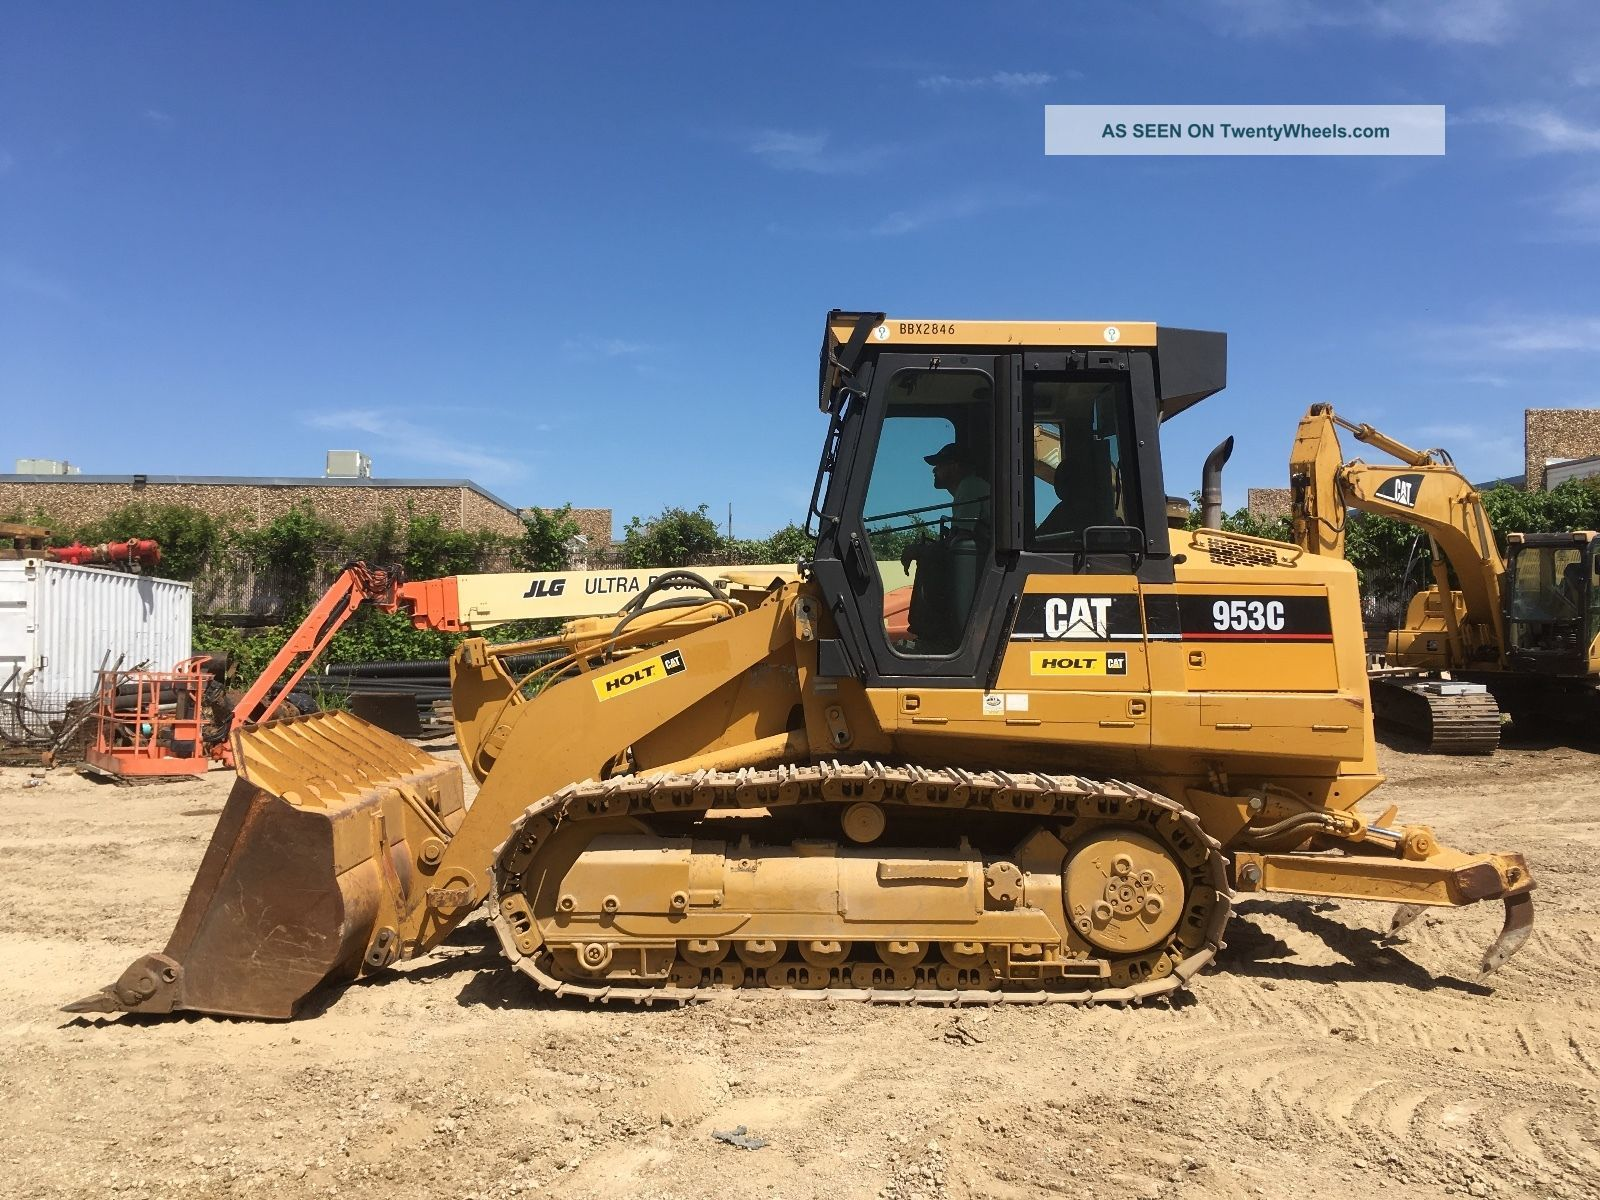 2006 Caterpillar 953c Crawler Loader W/rippers; Aux.  Hydraulics; 7070 Hrs Crawler Dozers & Loaders photo